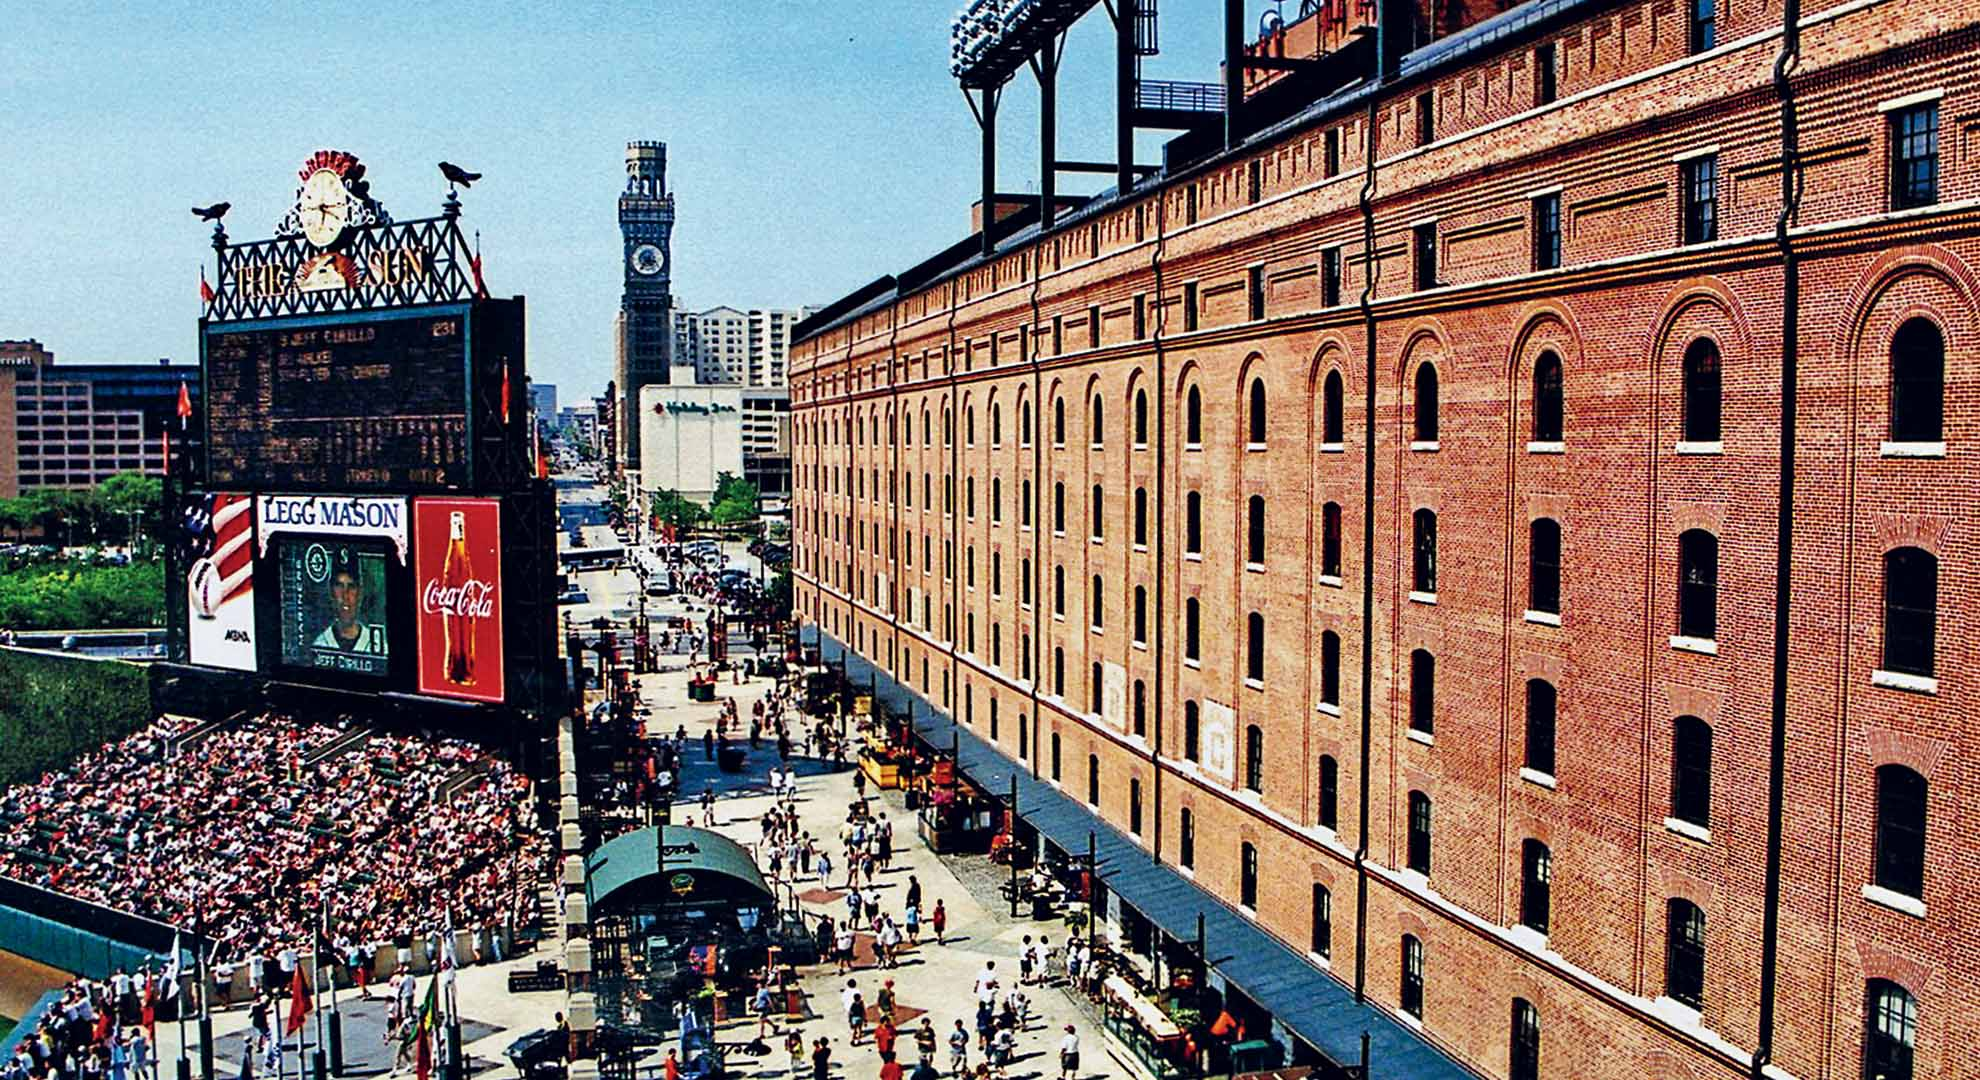 Camden Yards in Baltimore is the first modern stadium in its generation that re-turned to the center of the city